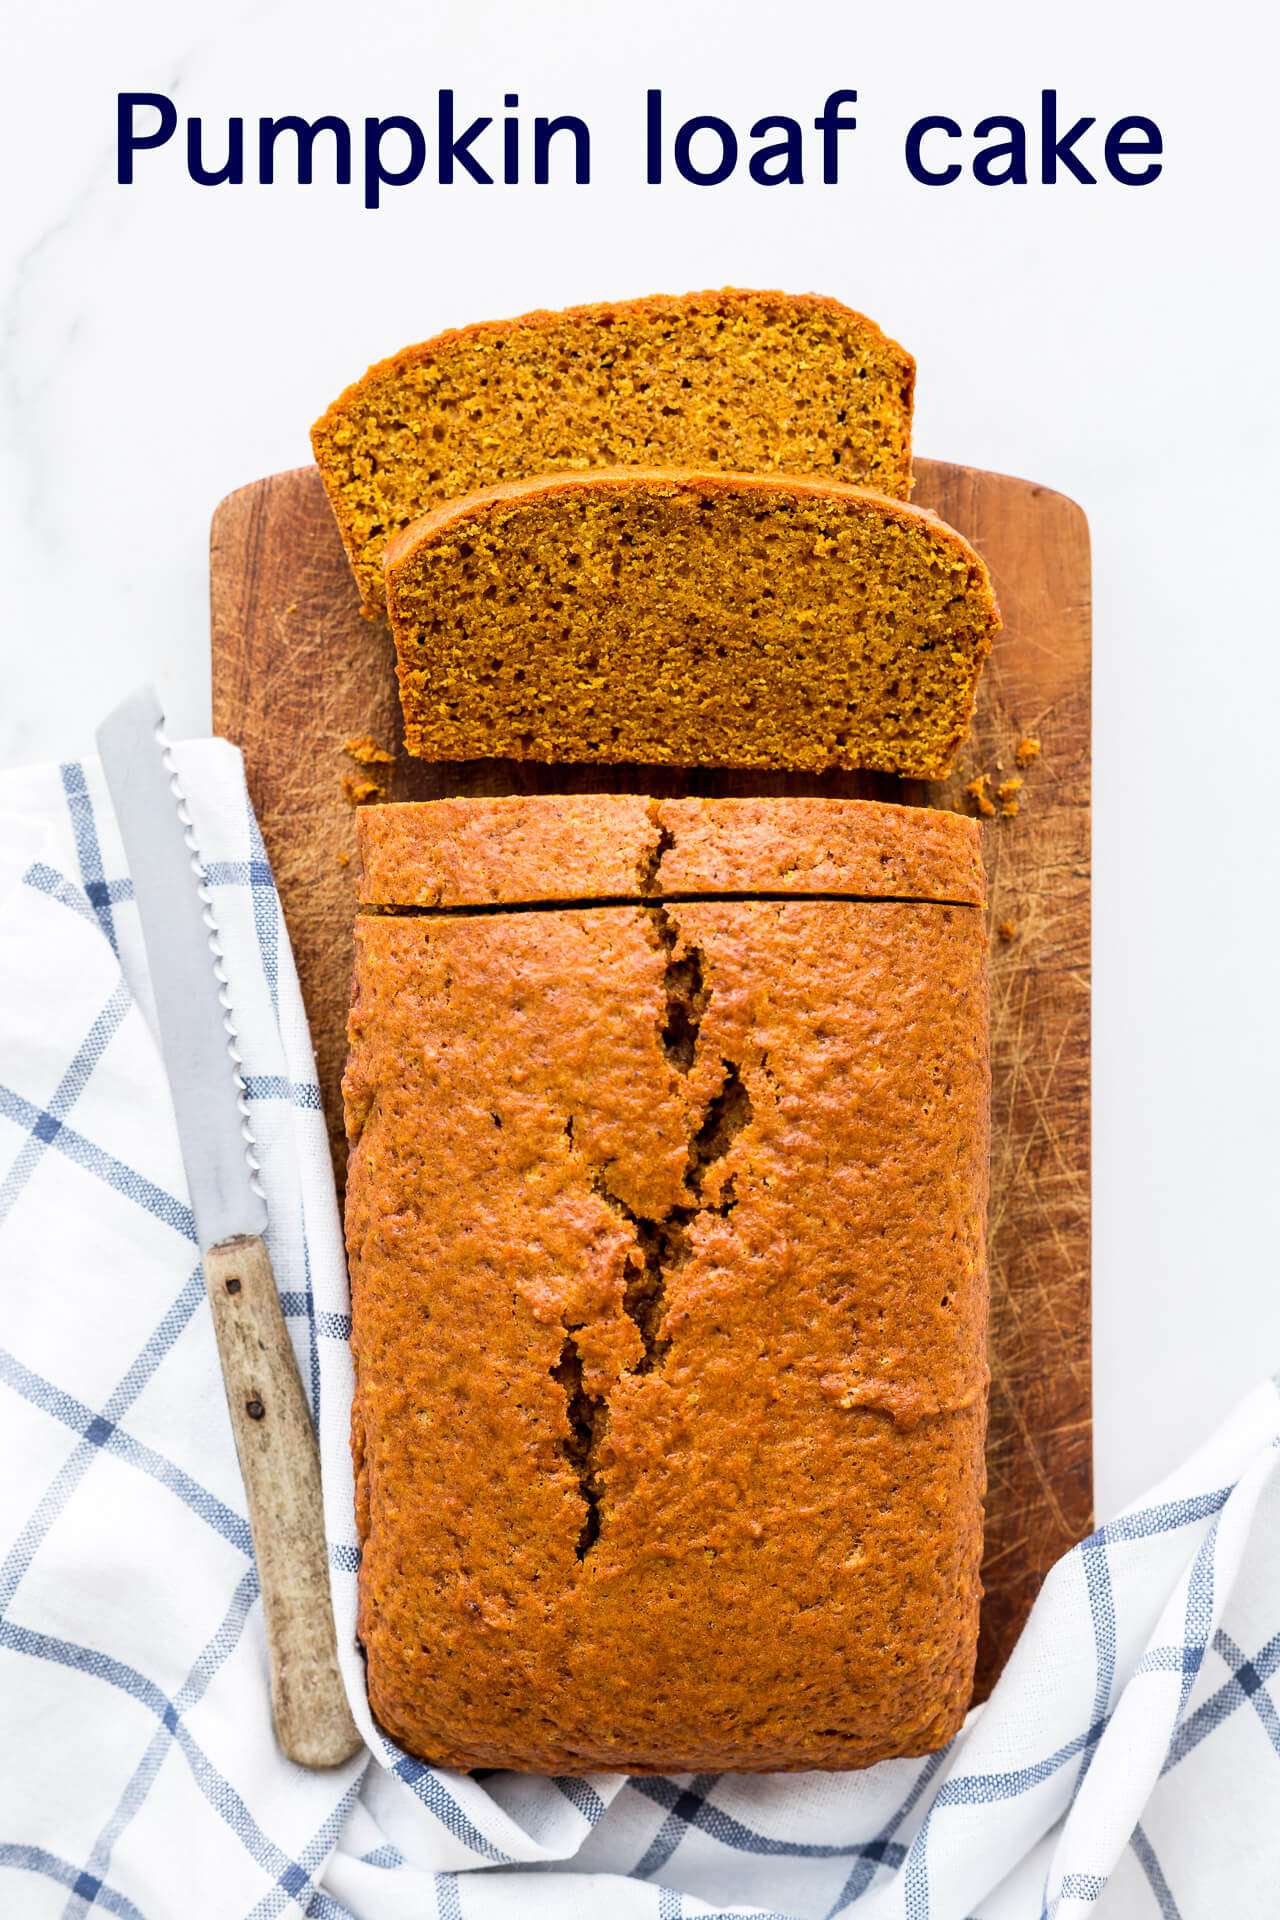 Spiced pumpkin loaf cake on a wood cutting board with a blue and white kitchen towel, sliced with a serrated knife